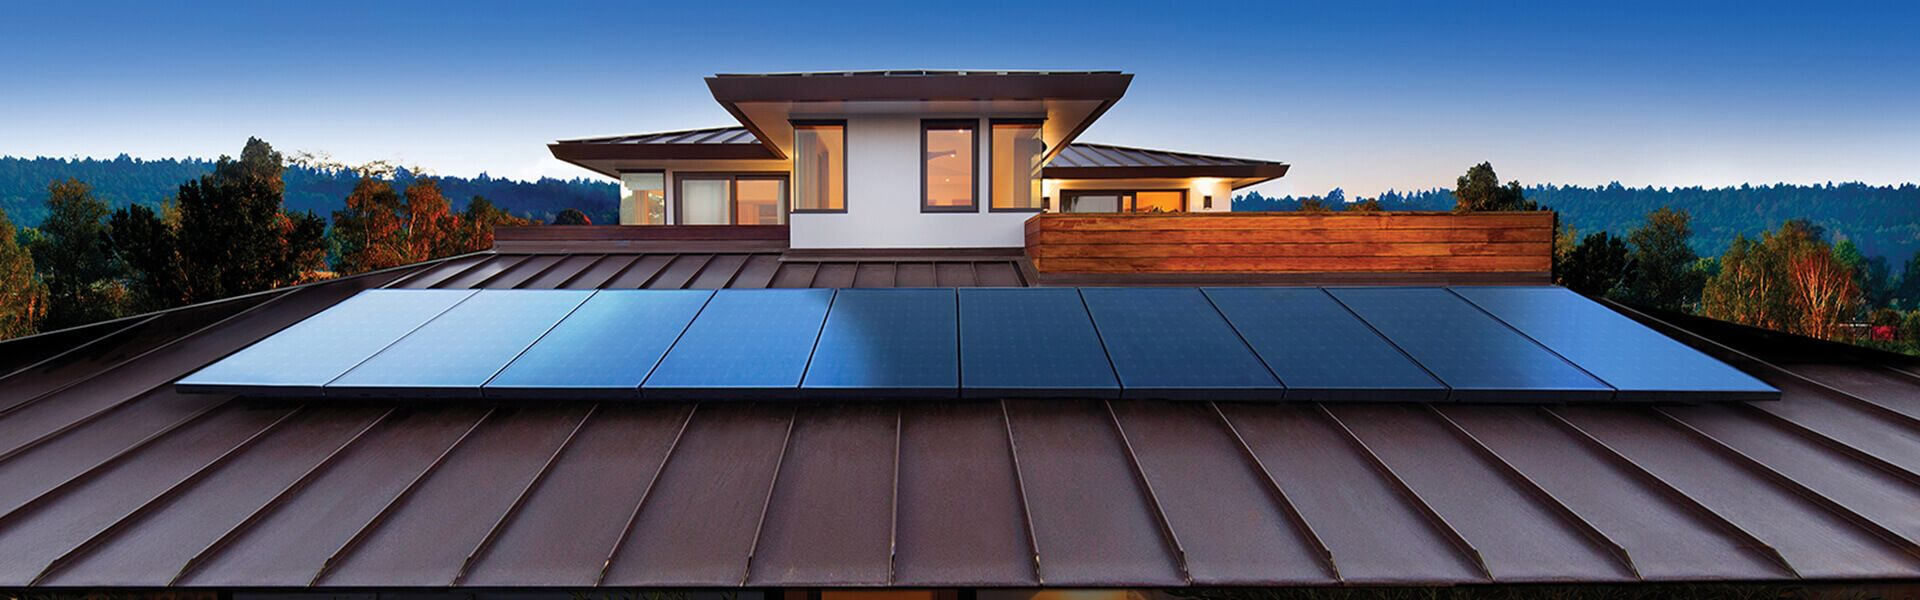 How to Buy High Efficiency Solar Panels for Your Home